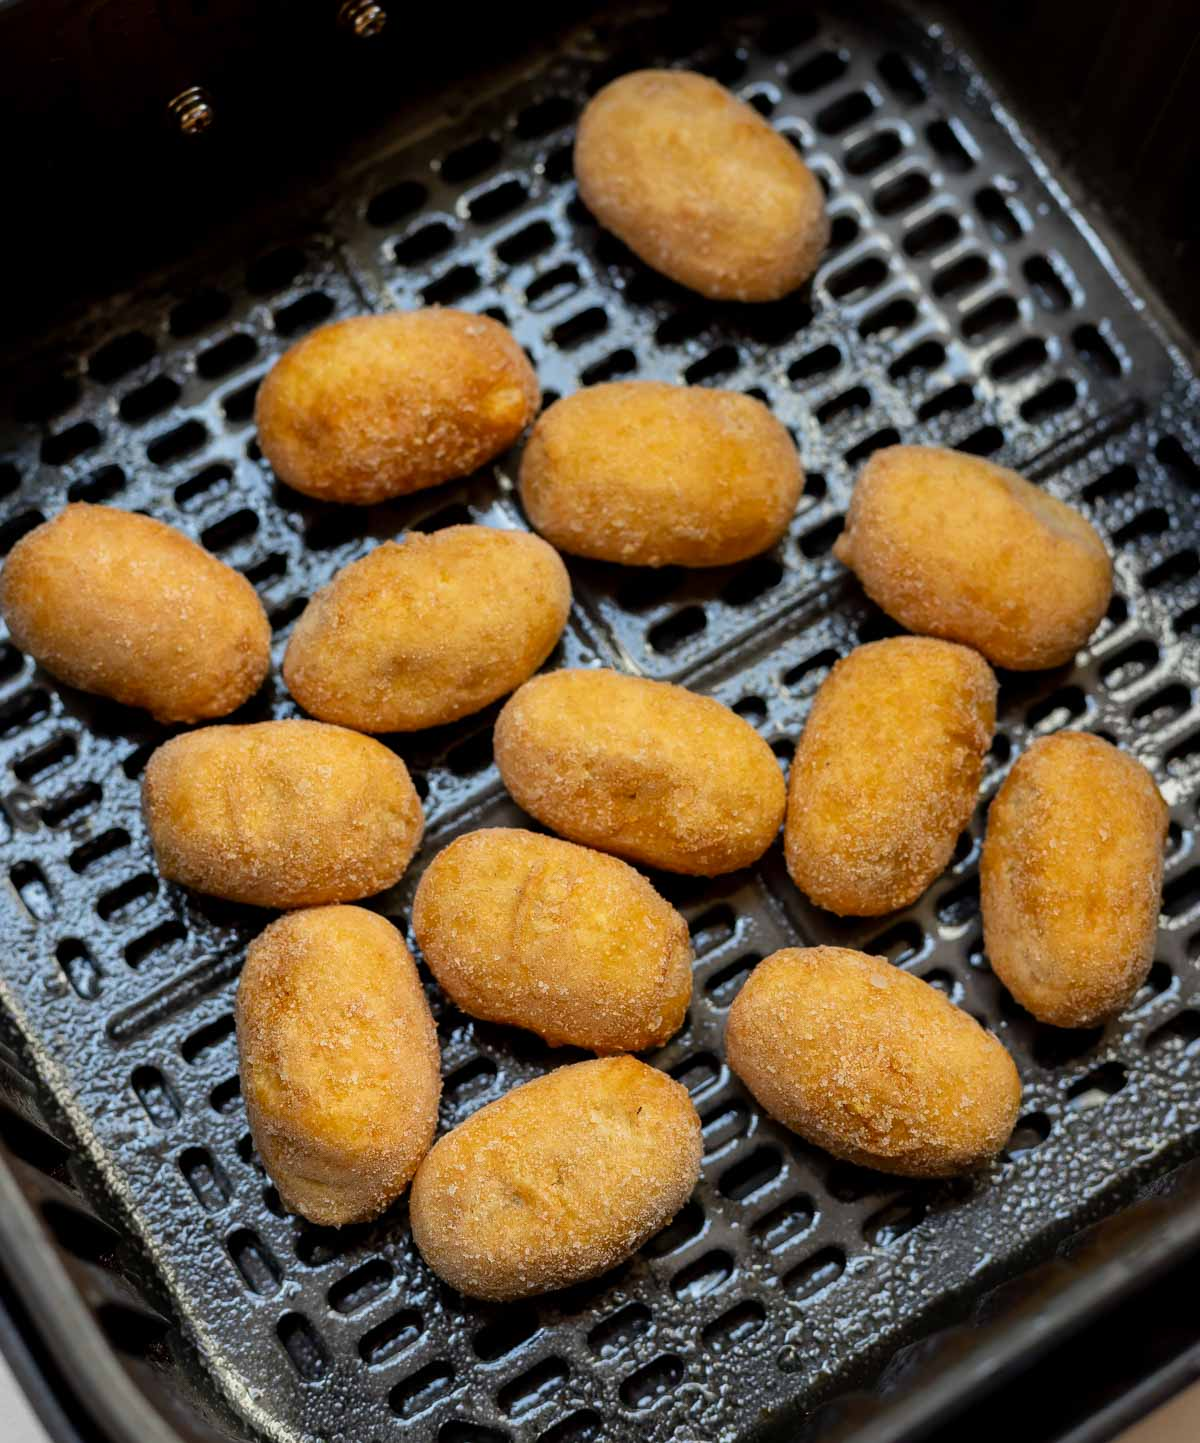 frozen mini corndogs in air fryer basket